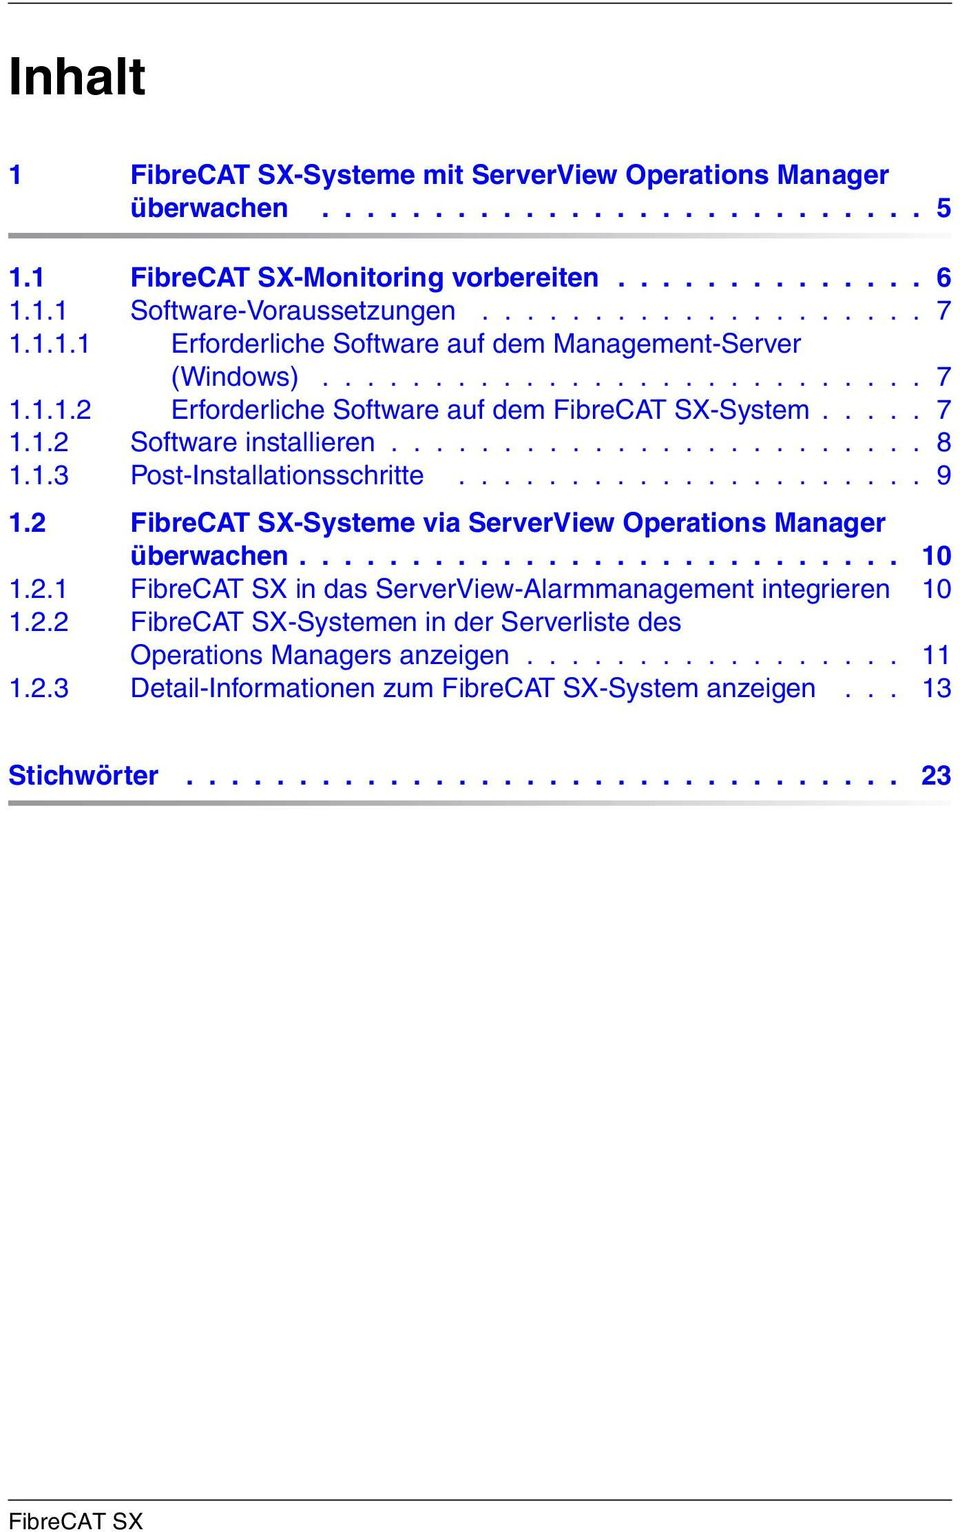 1.3 Post-Installationsschritte..................... 9 1.2 FibreCAT SX-Systeme via ServerView Operations Manager überwachen........................... 10 1.2.1 FibreCAT SX in das ServerView-Alarmmanagement integrieren 10 1.